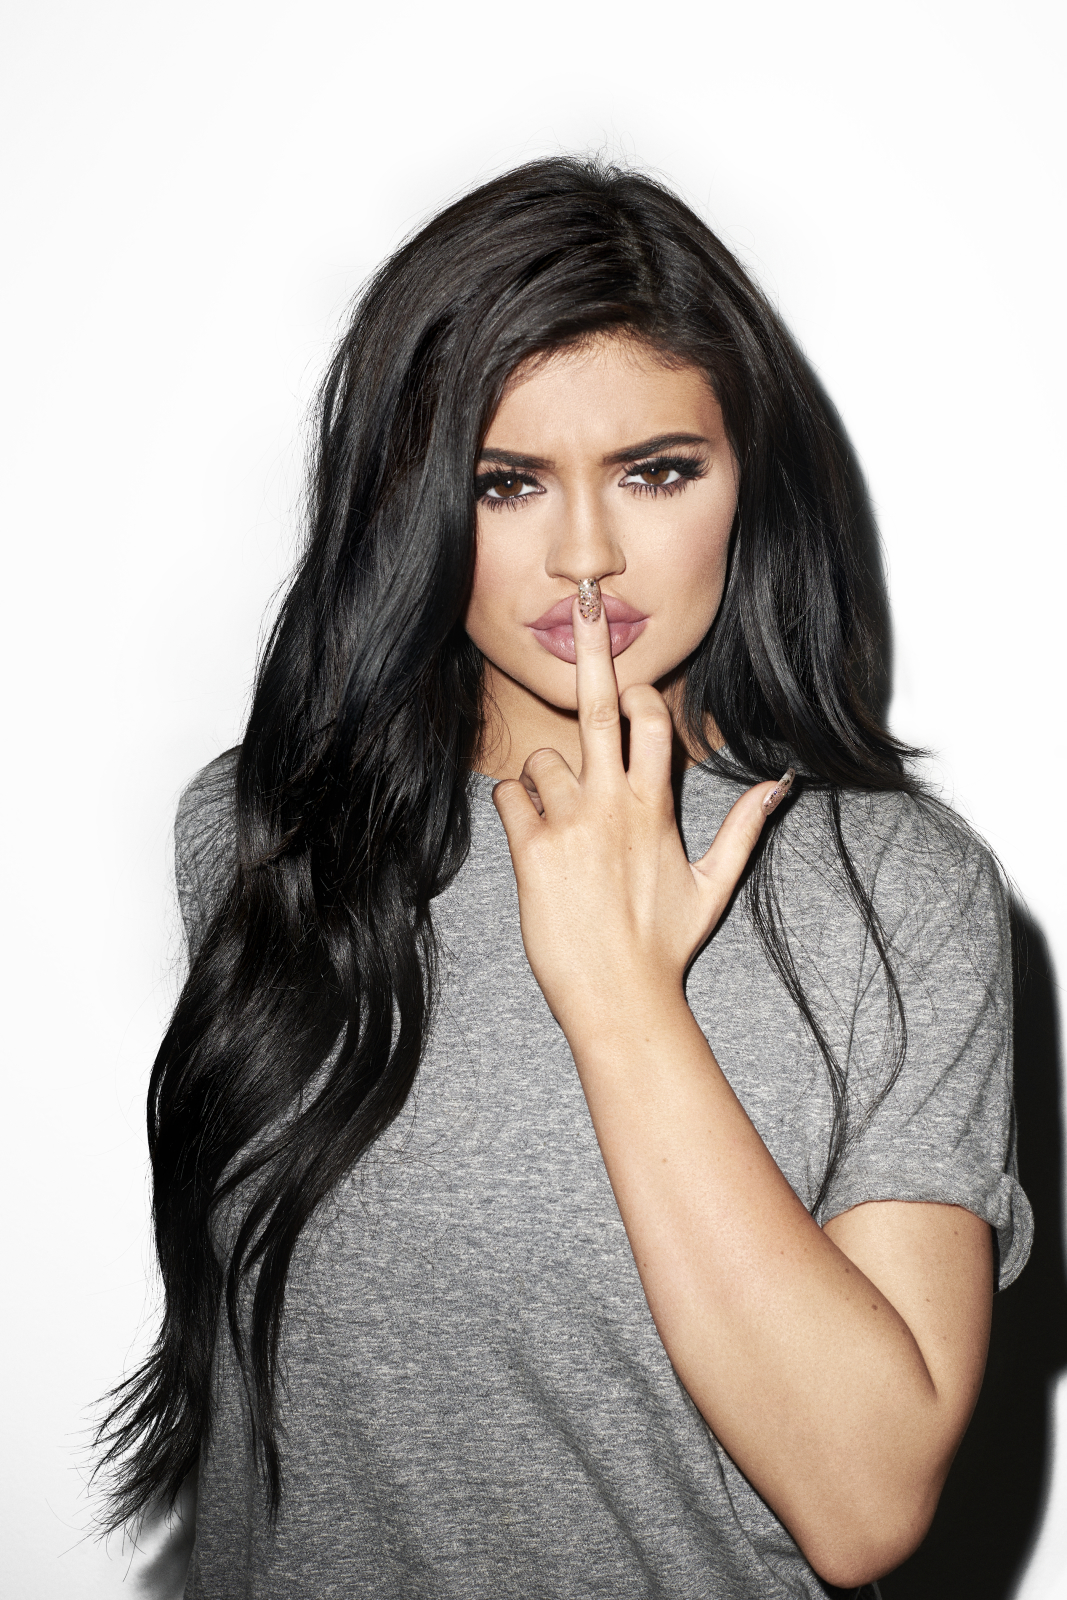 Kylie Jenner Depressed: The 31 Sexiest Kylie Jenner Photos Of All Time